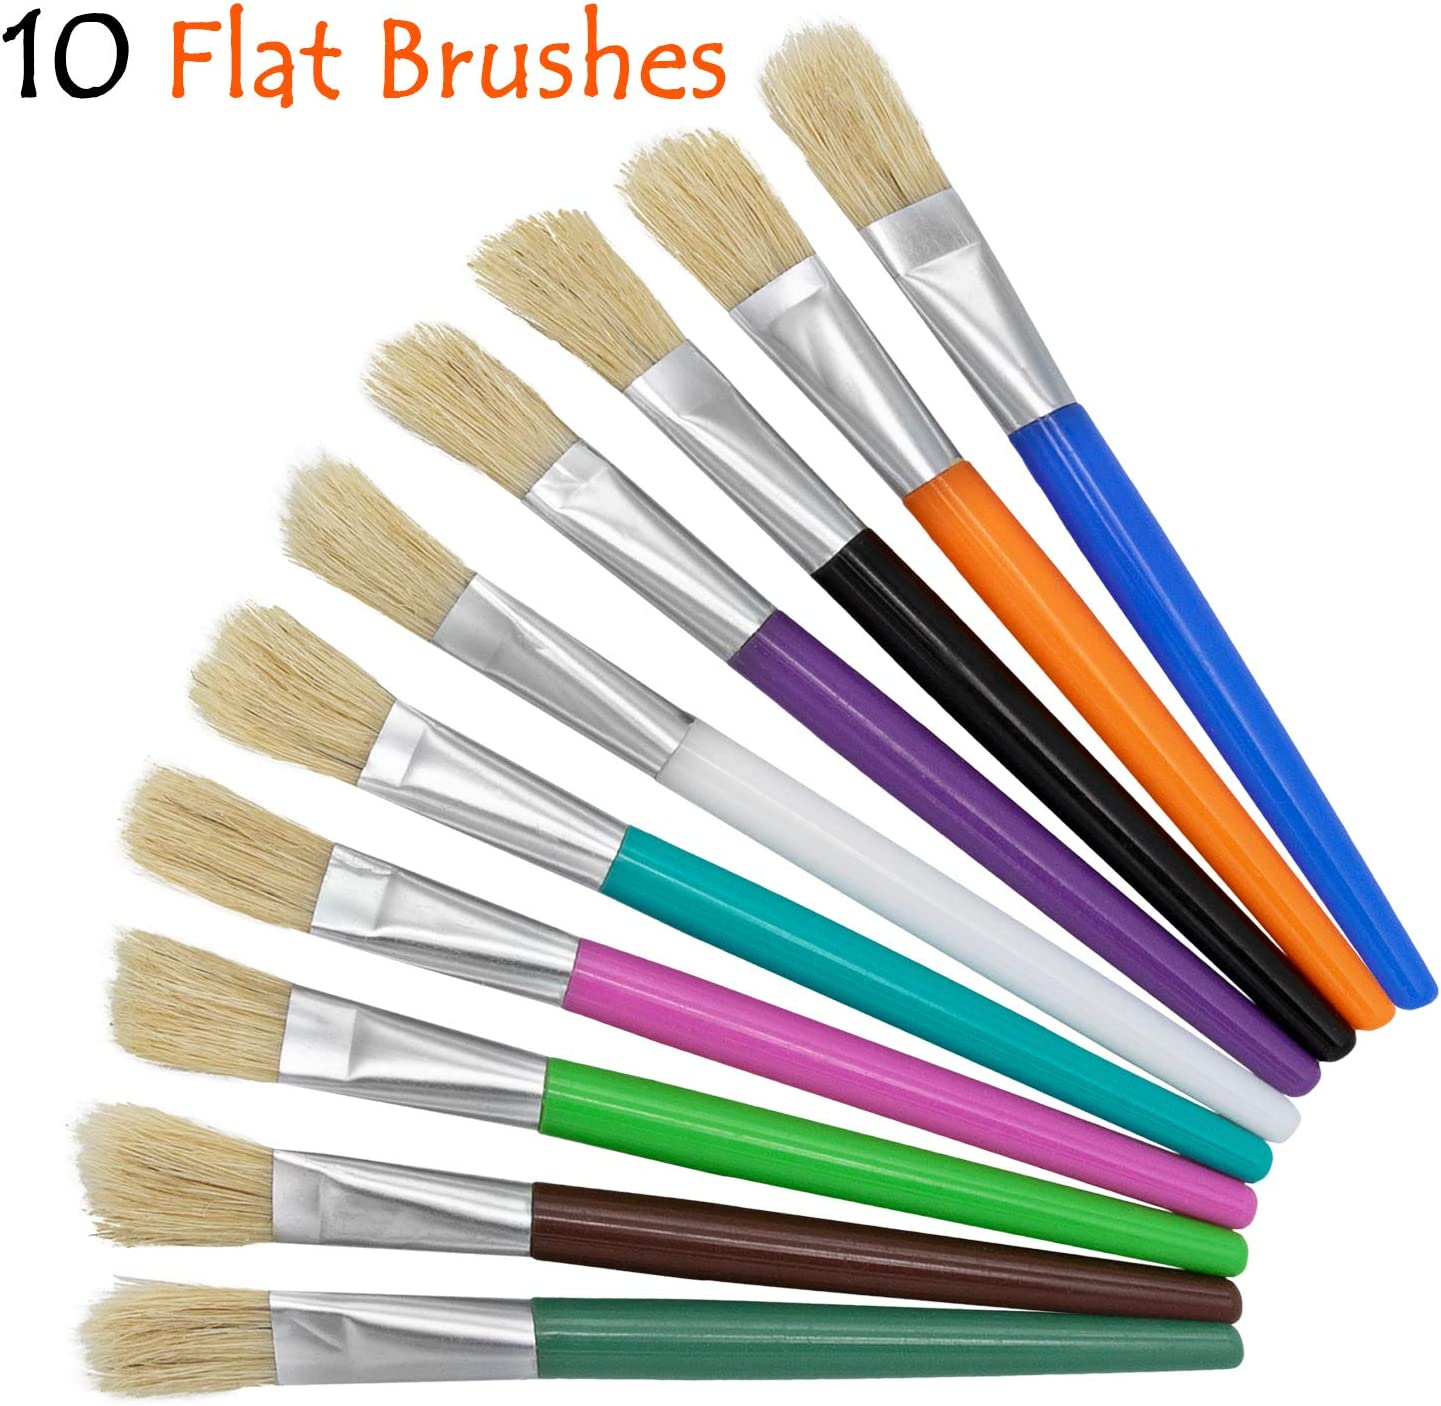 glokers 20-Piece Kids Paint Brushes Set with Paint Palette /& 6 Washable Paints -10 Flat Brushes /& 10 Round Brushes Ultra-Smooth Non-Toxic Craft Paints Easy to Clean Kid-Friendly